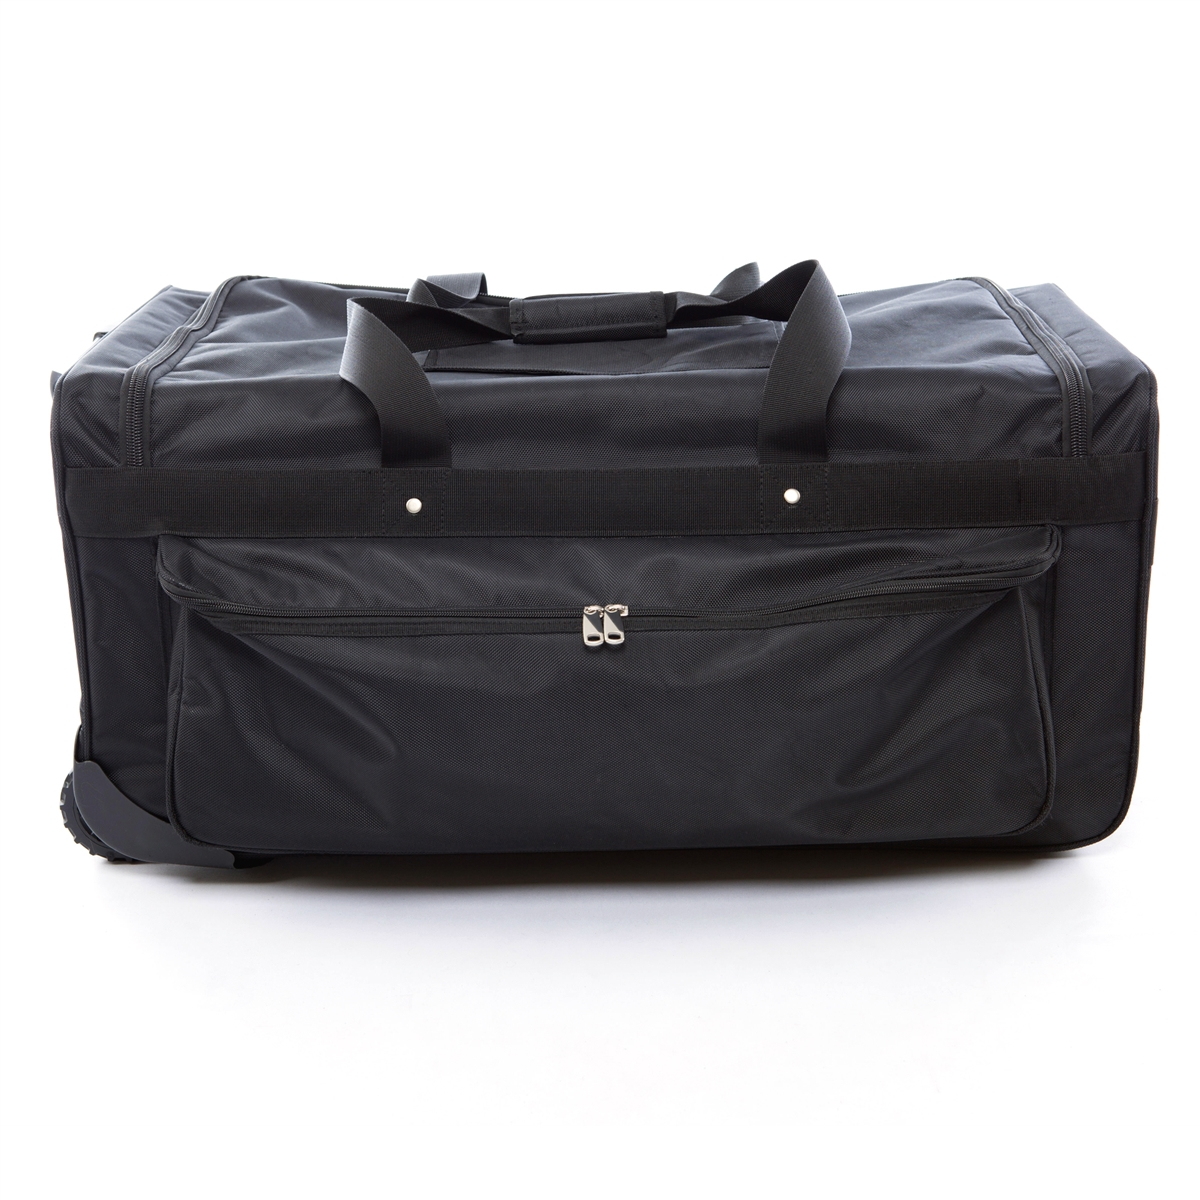 The Caddy Bag Is The Ultimate Duffel With Wheels And A